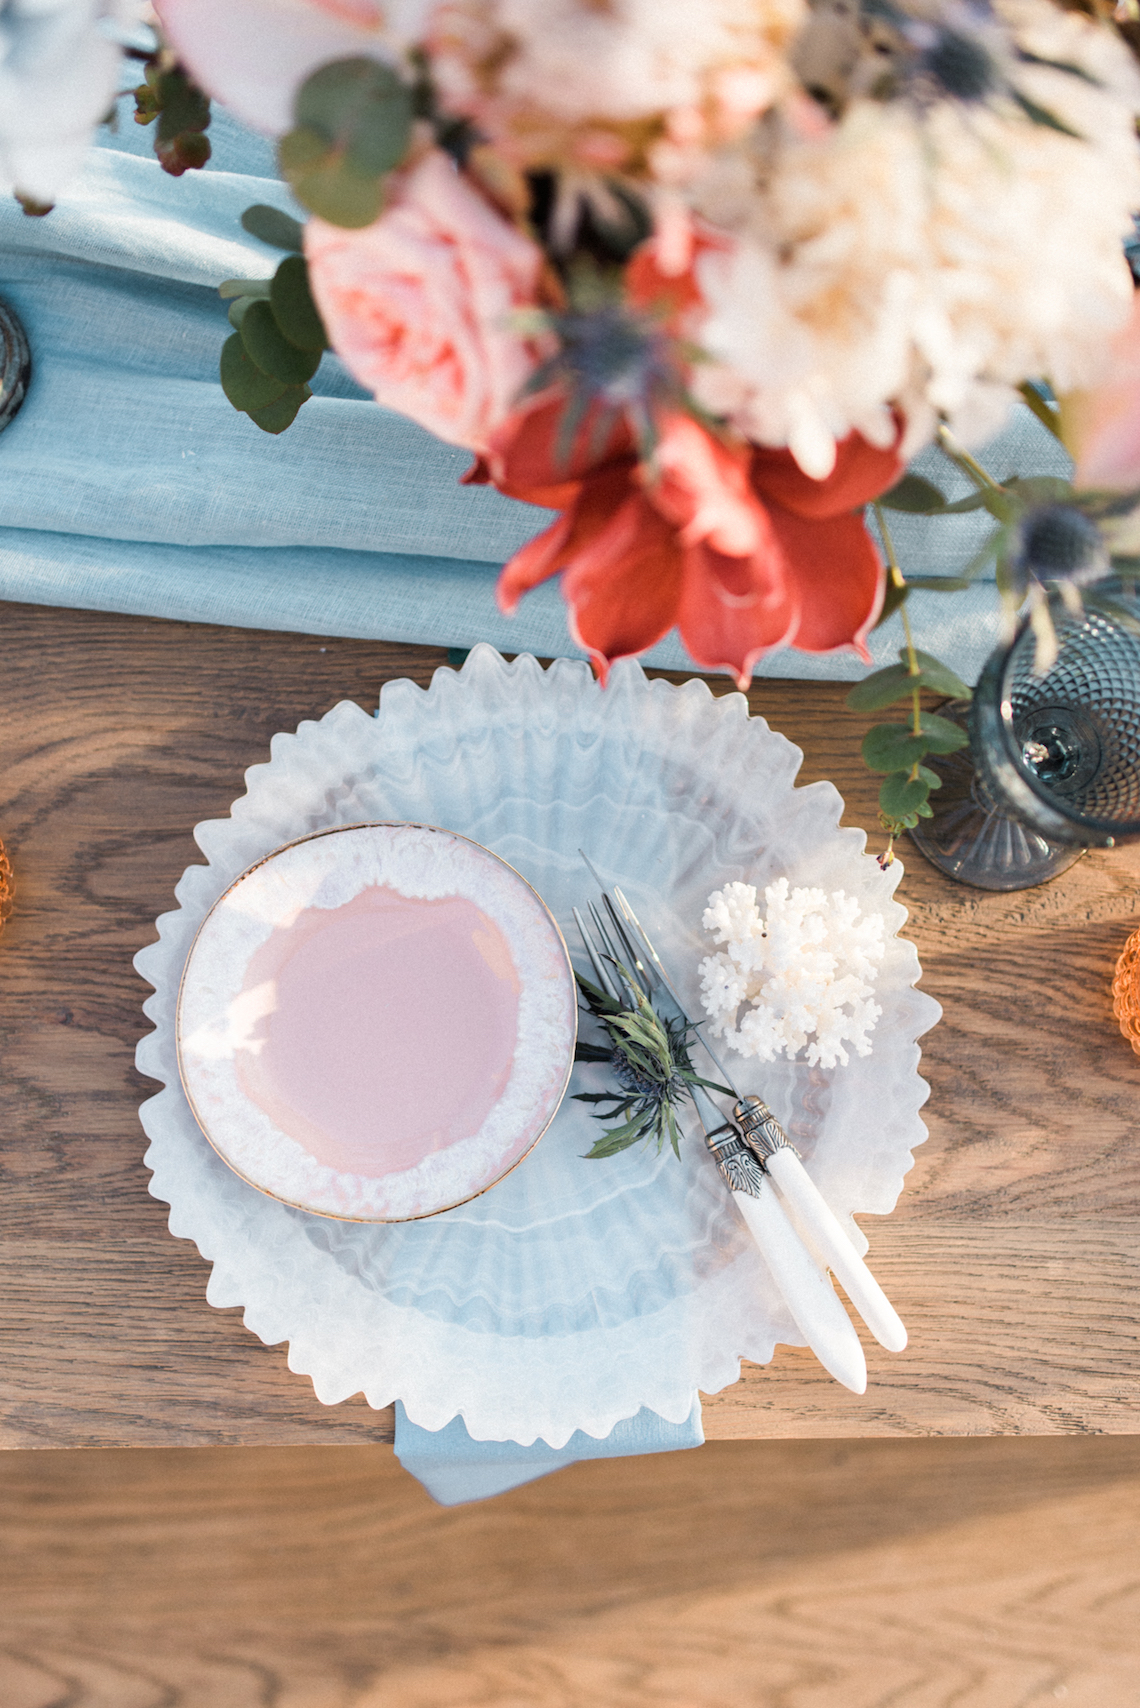 Seashell Wedding Ideas From The Beaches Of Greece – George Liopetas 29